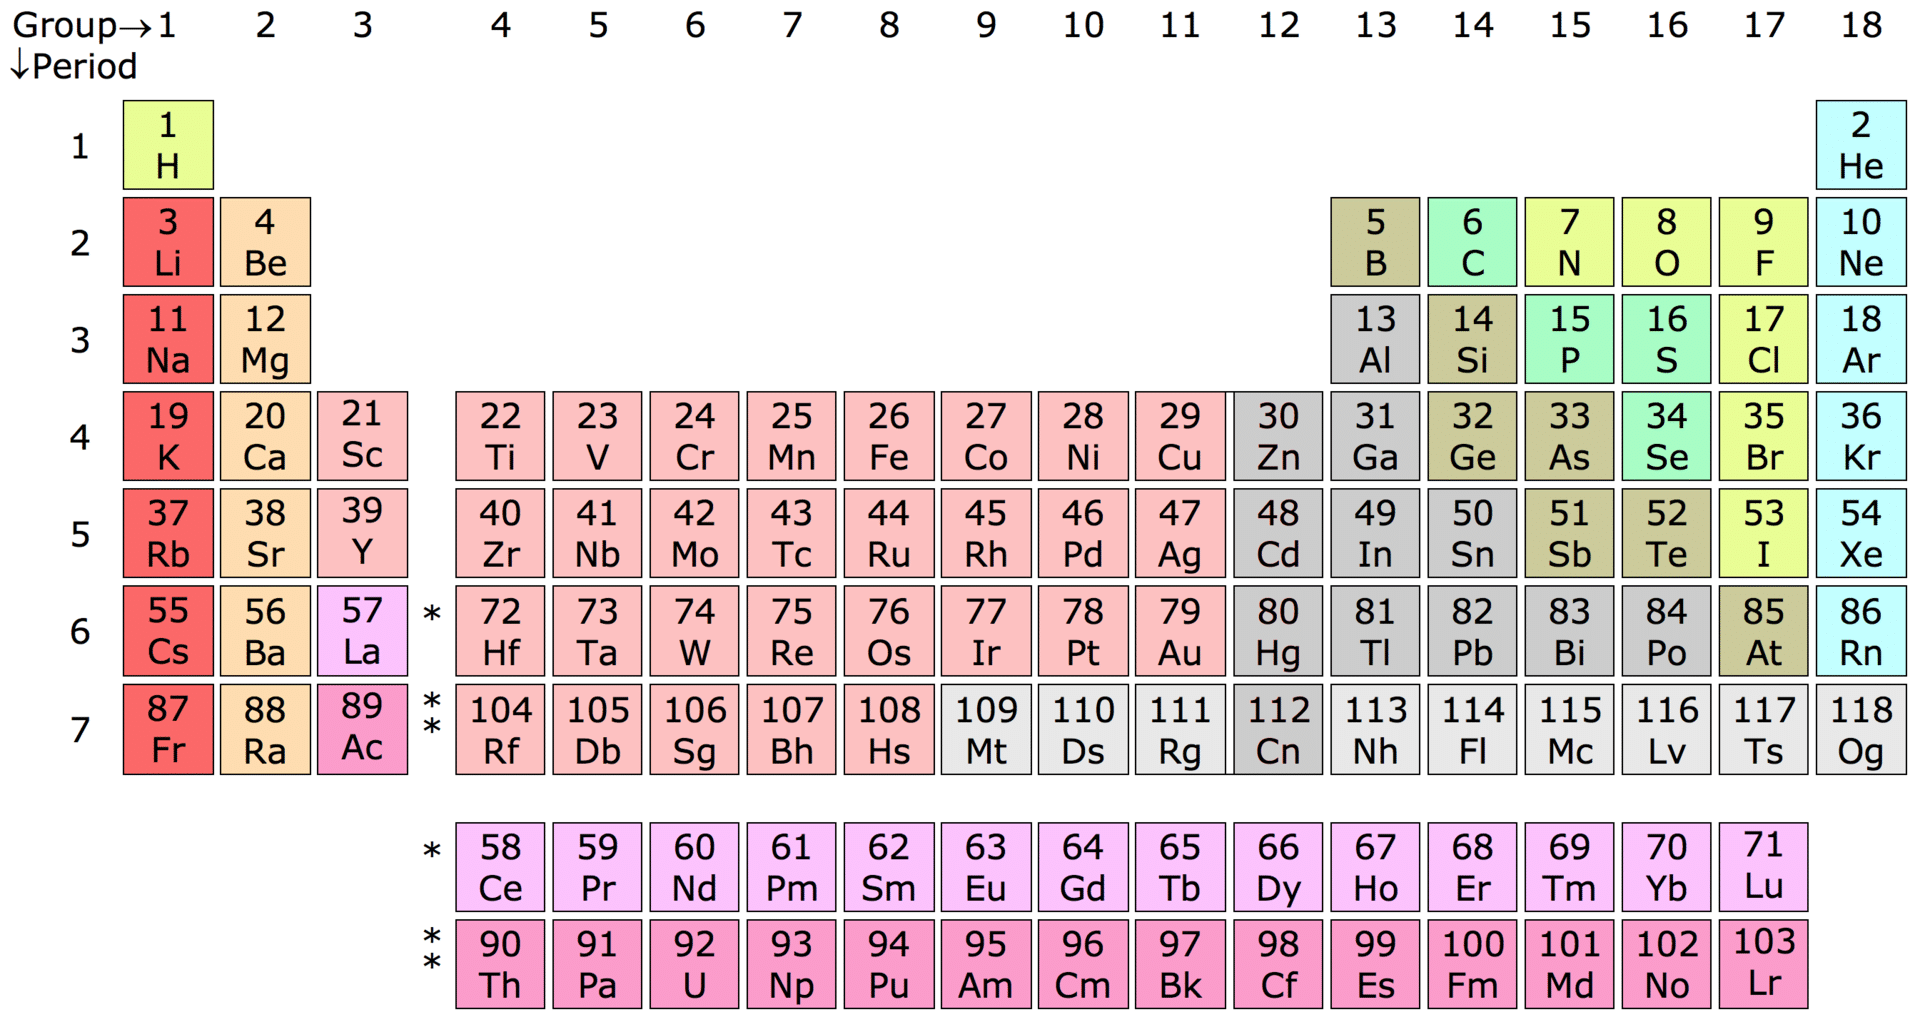 Periodic table of elements chart.